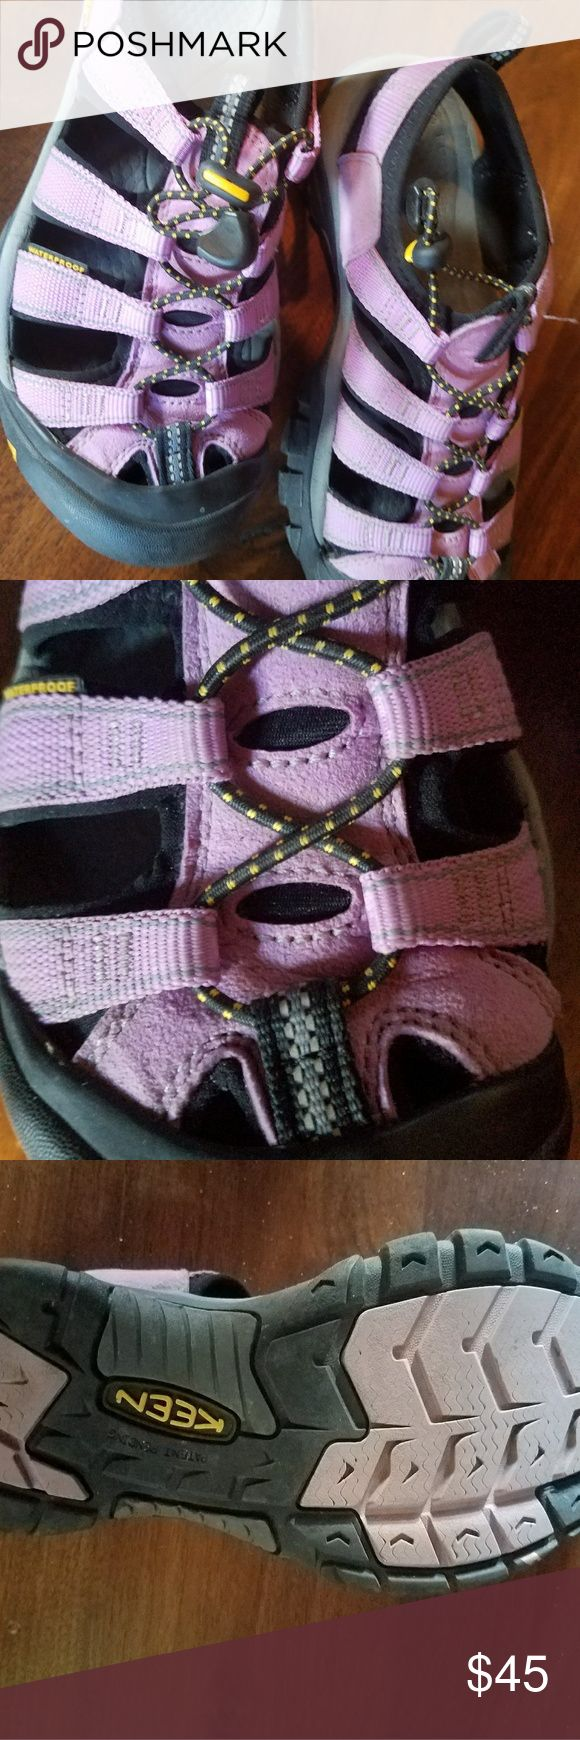 Keen purple sports sandals Super comfy purple Keen sport sandals. Worn once. No signs of wear. Keen Shoes Athletic Shoes